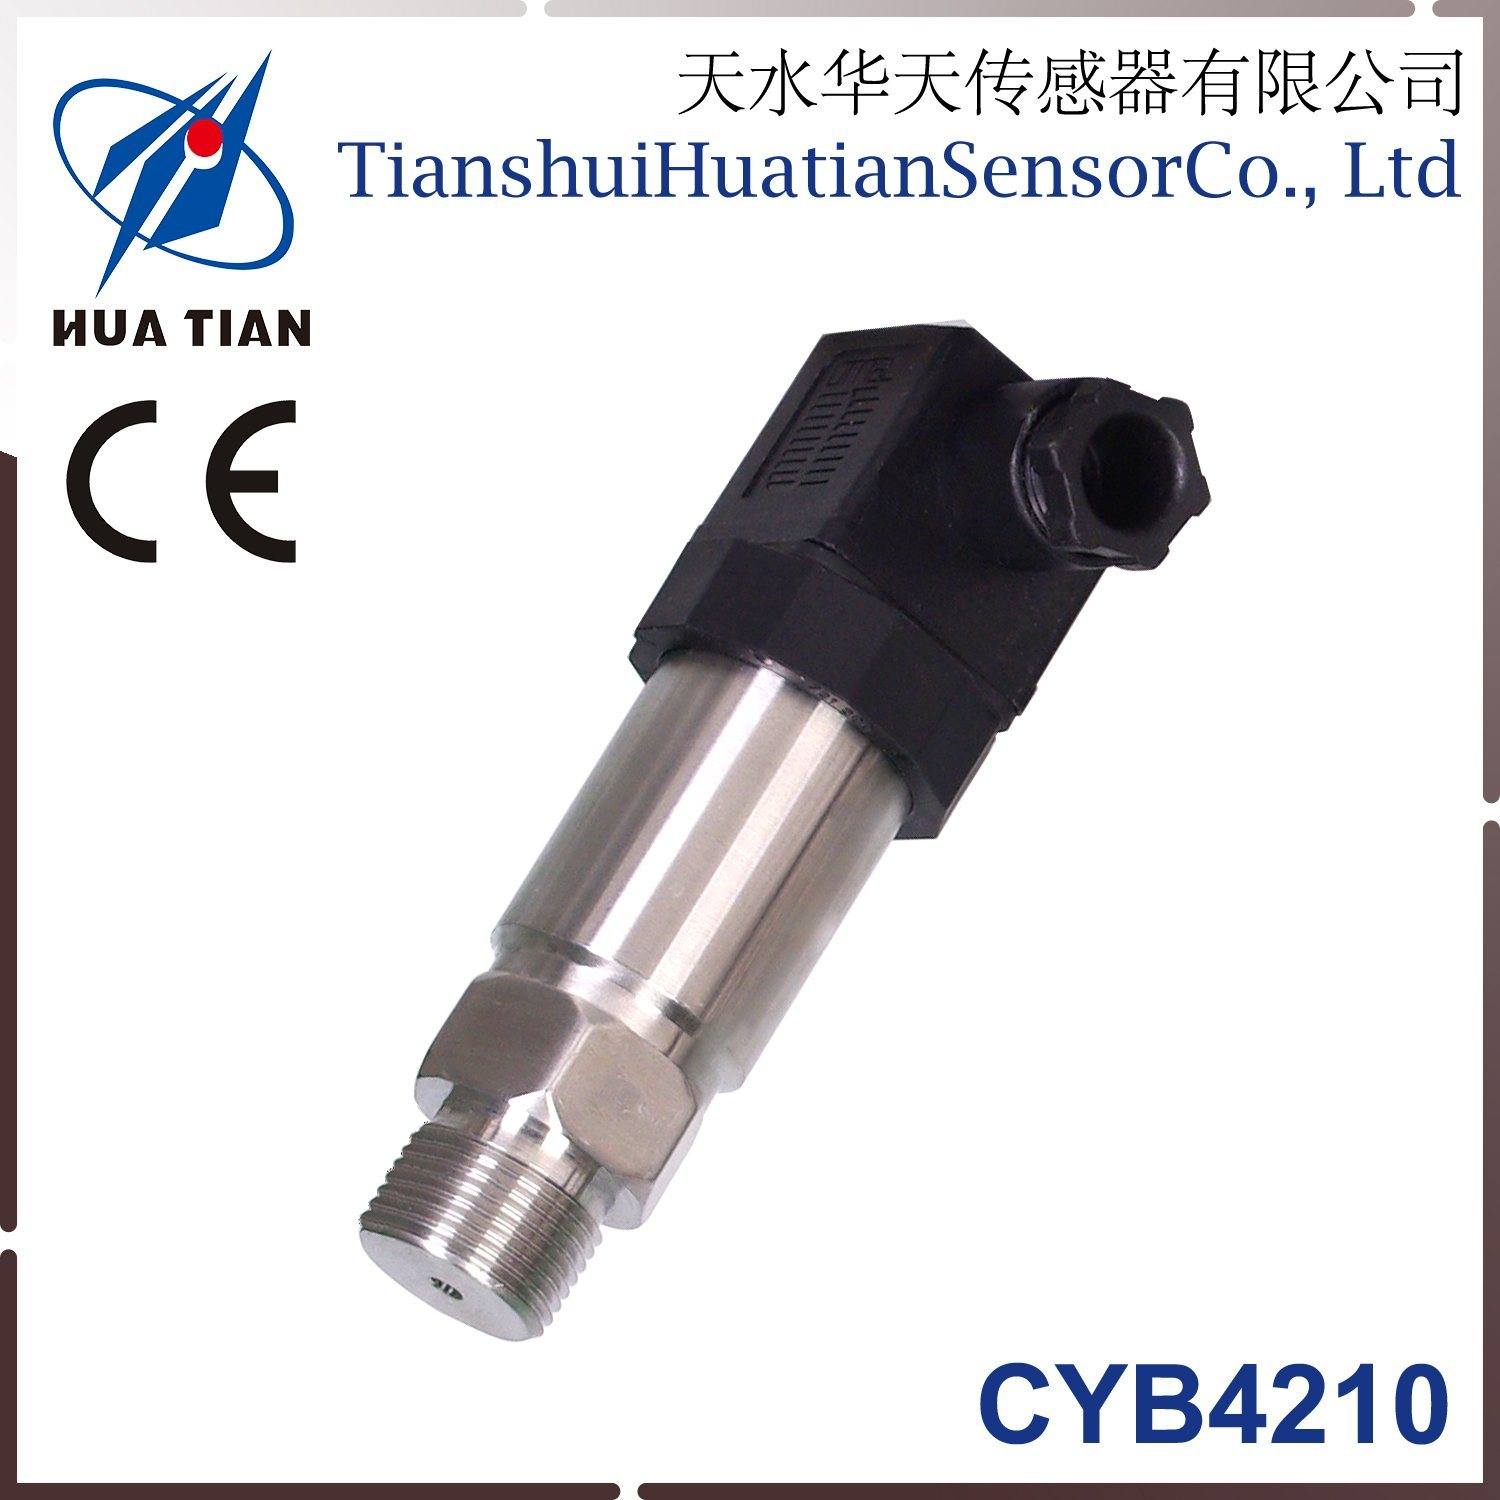 Cyb4210 Small Outline Pressure Transmitter